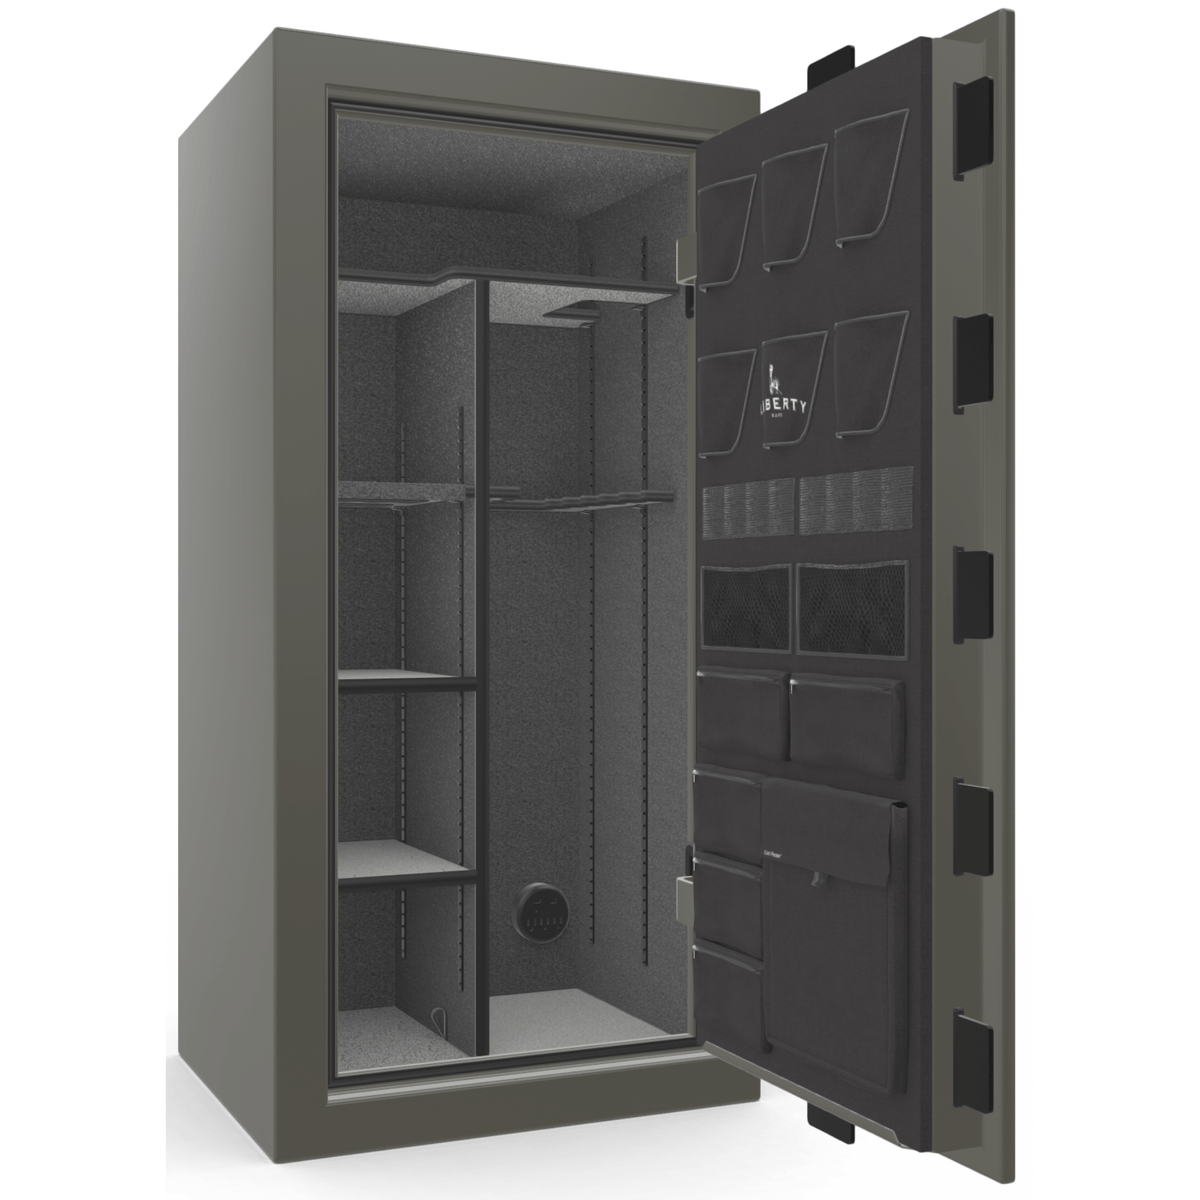 "Franklin | 25 | Level 4 Security | 75 Minute Fire Protection | Gray Gloss | Black Electronic Lock | 60.5""(H) x 30""(W) x 28.5""(D)"